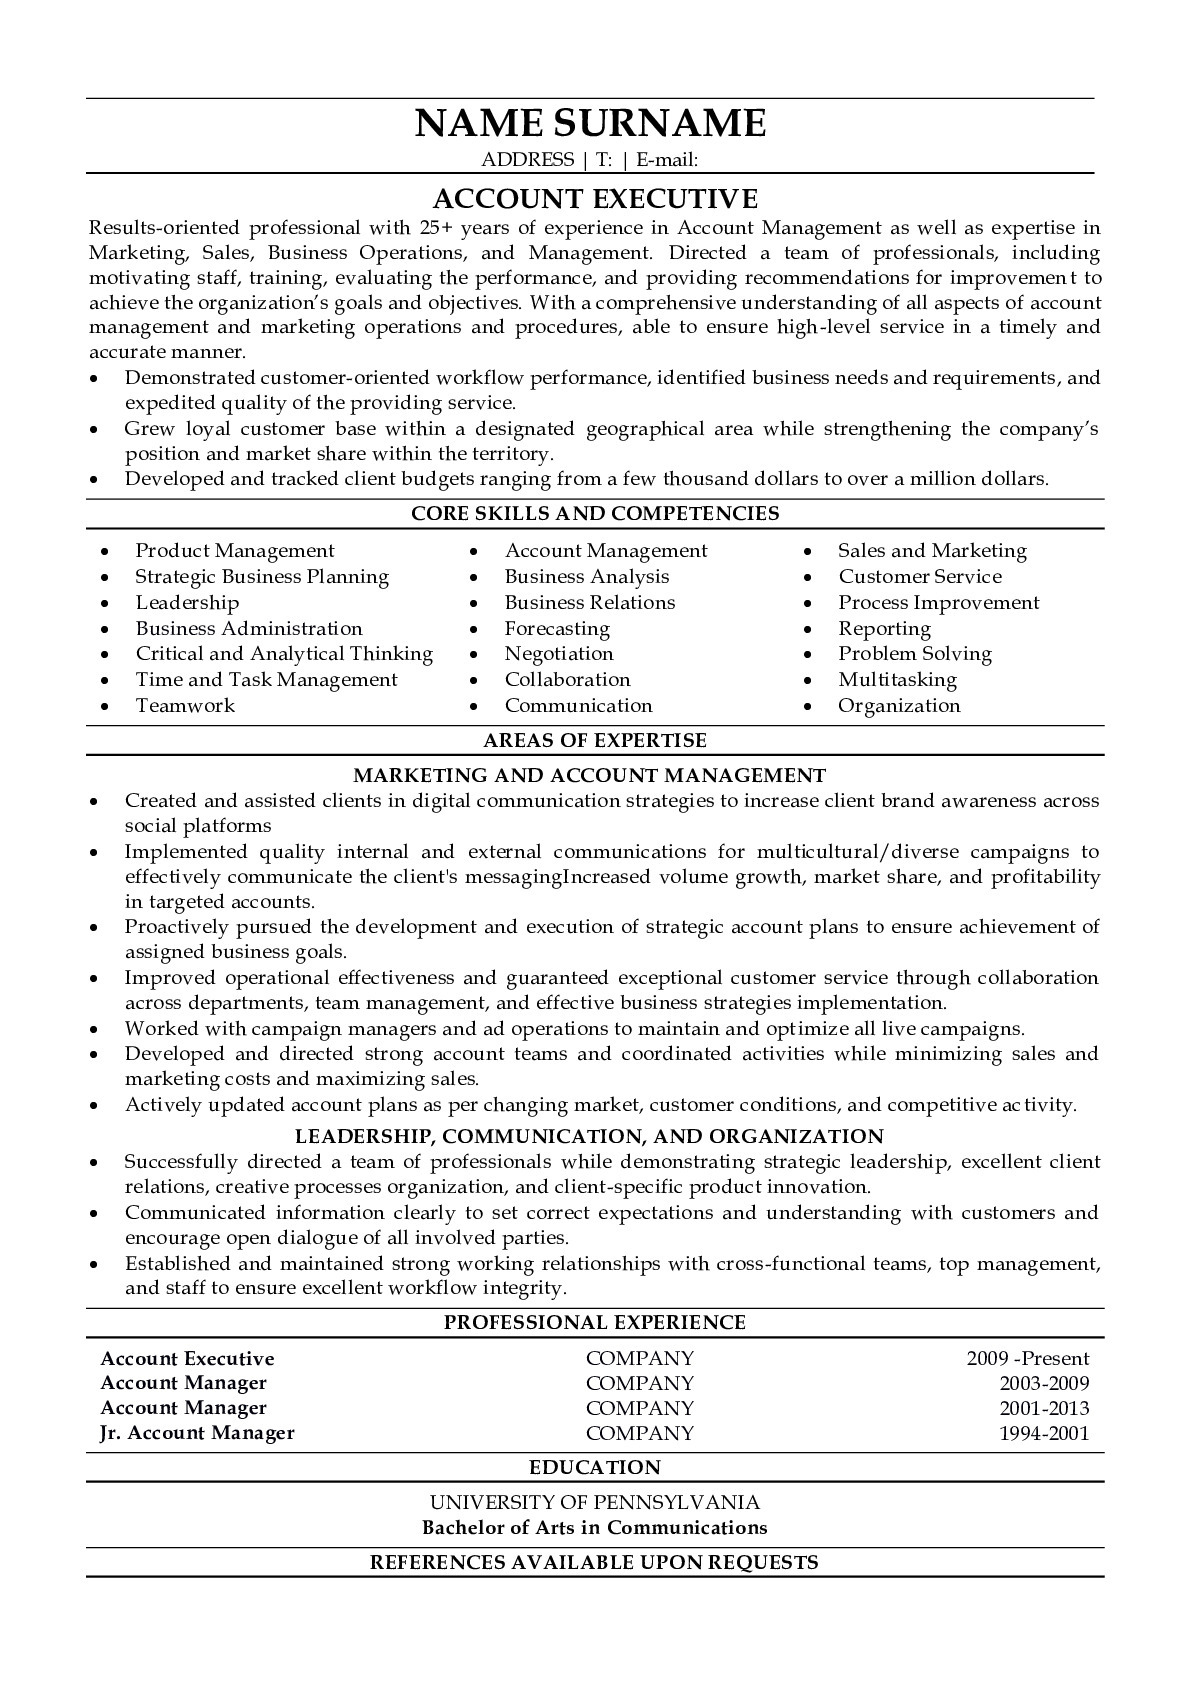 Resume Example for Account Executive